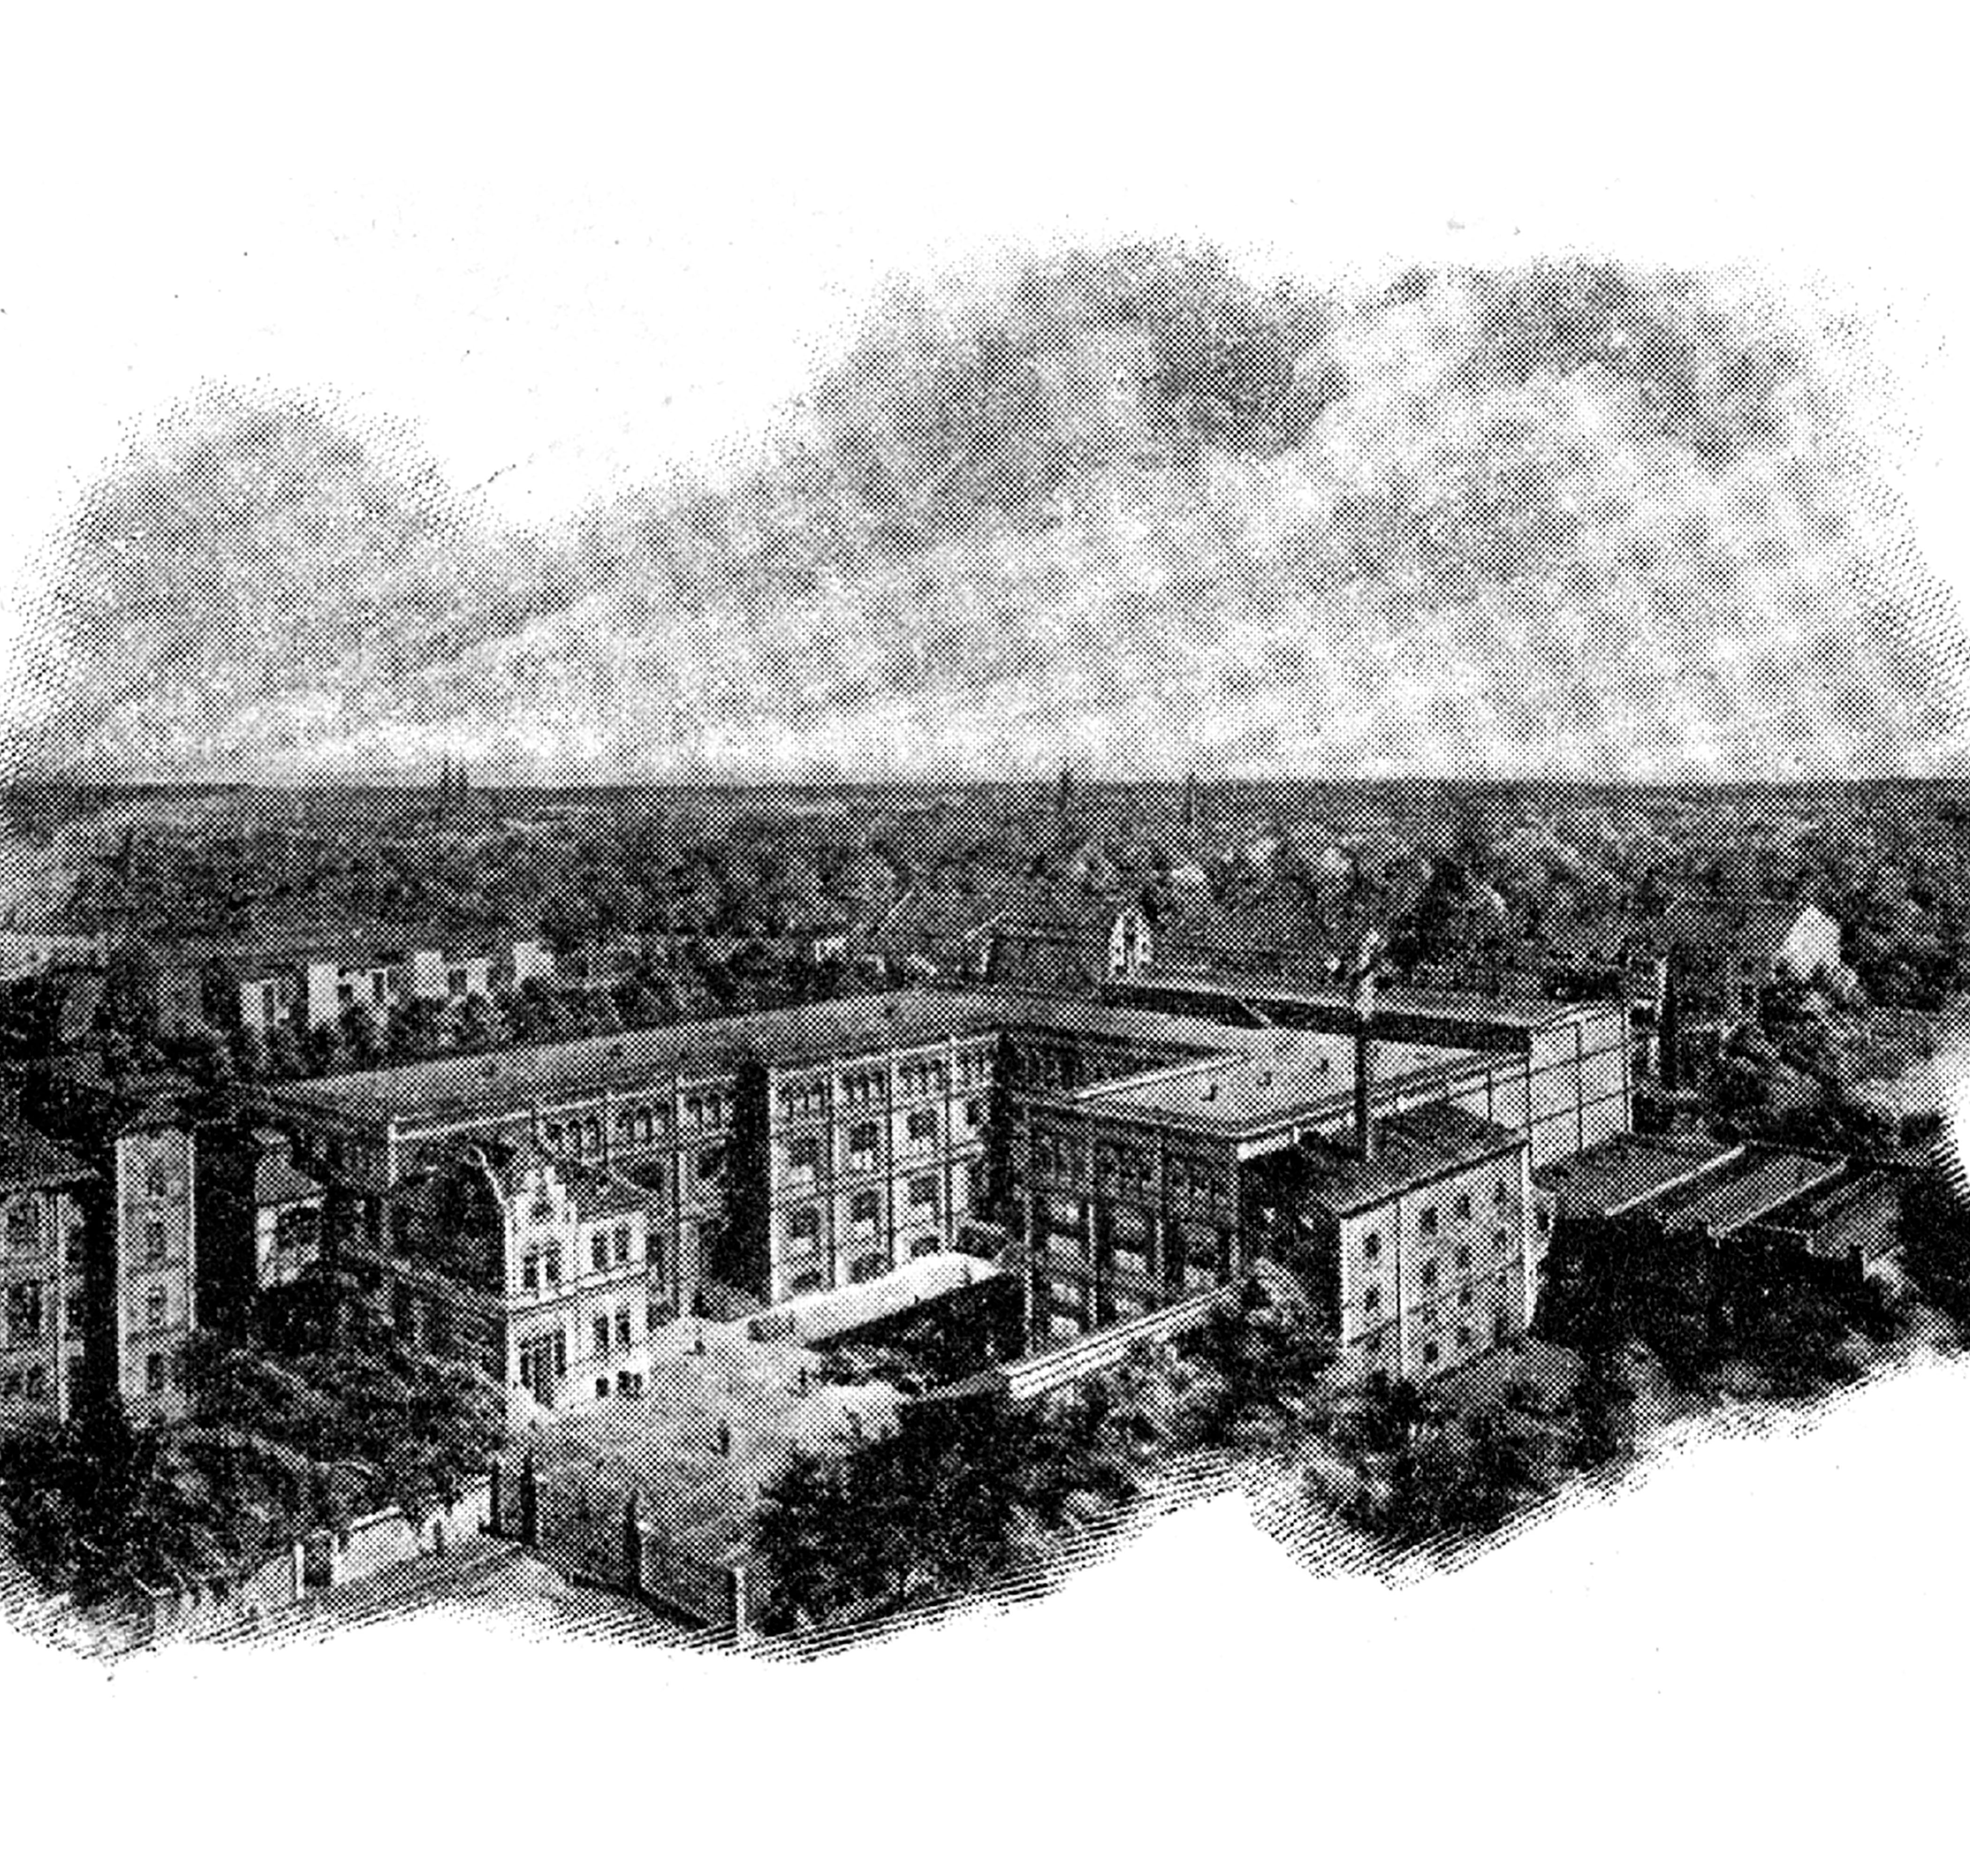 Image of headquarters of Lukas in 1892